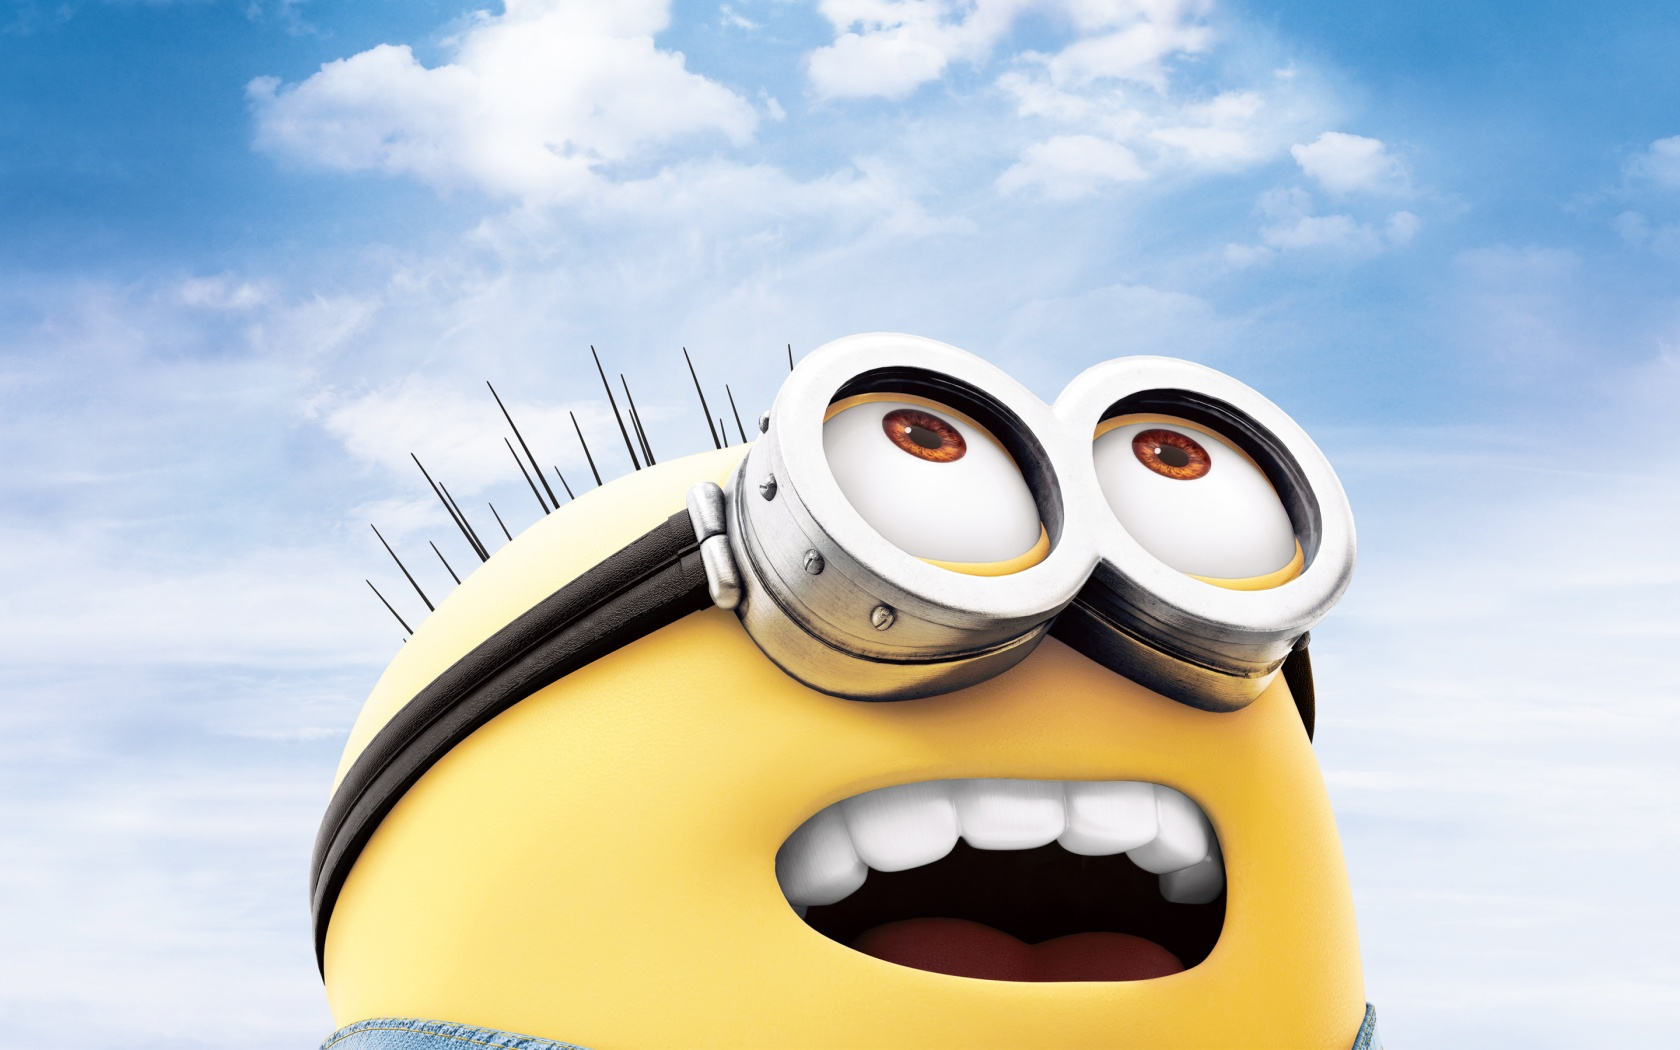 Minion In Despicable Me 2 Wallpapers In Jpg Format For Free Download